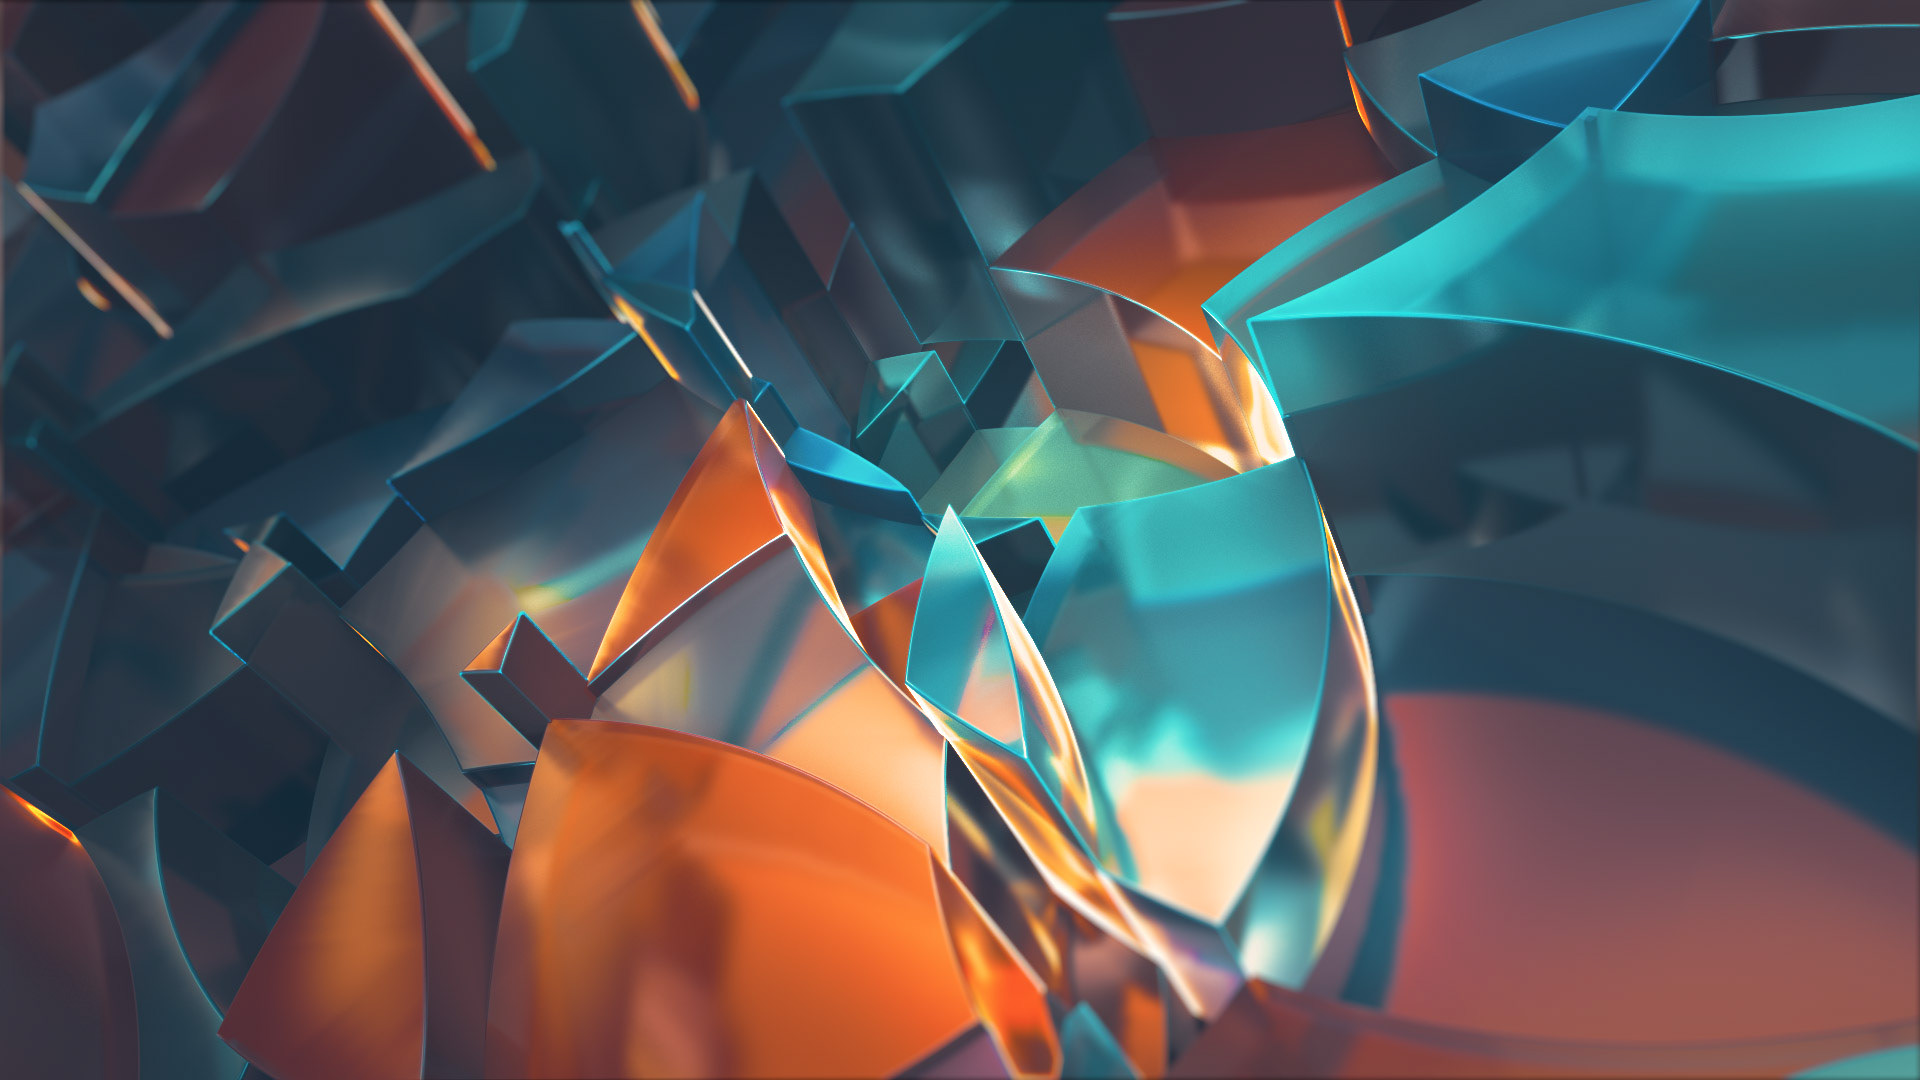 GUI ESP - Motion Design - C4D / Redshift Experiments - 2018